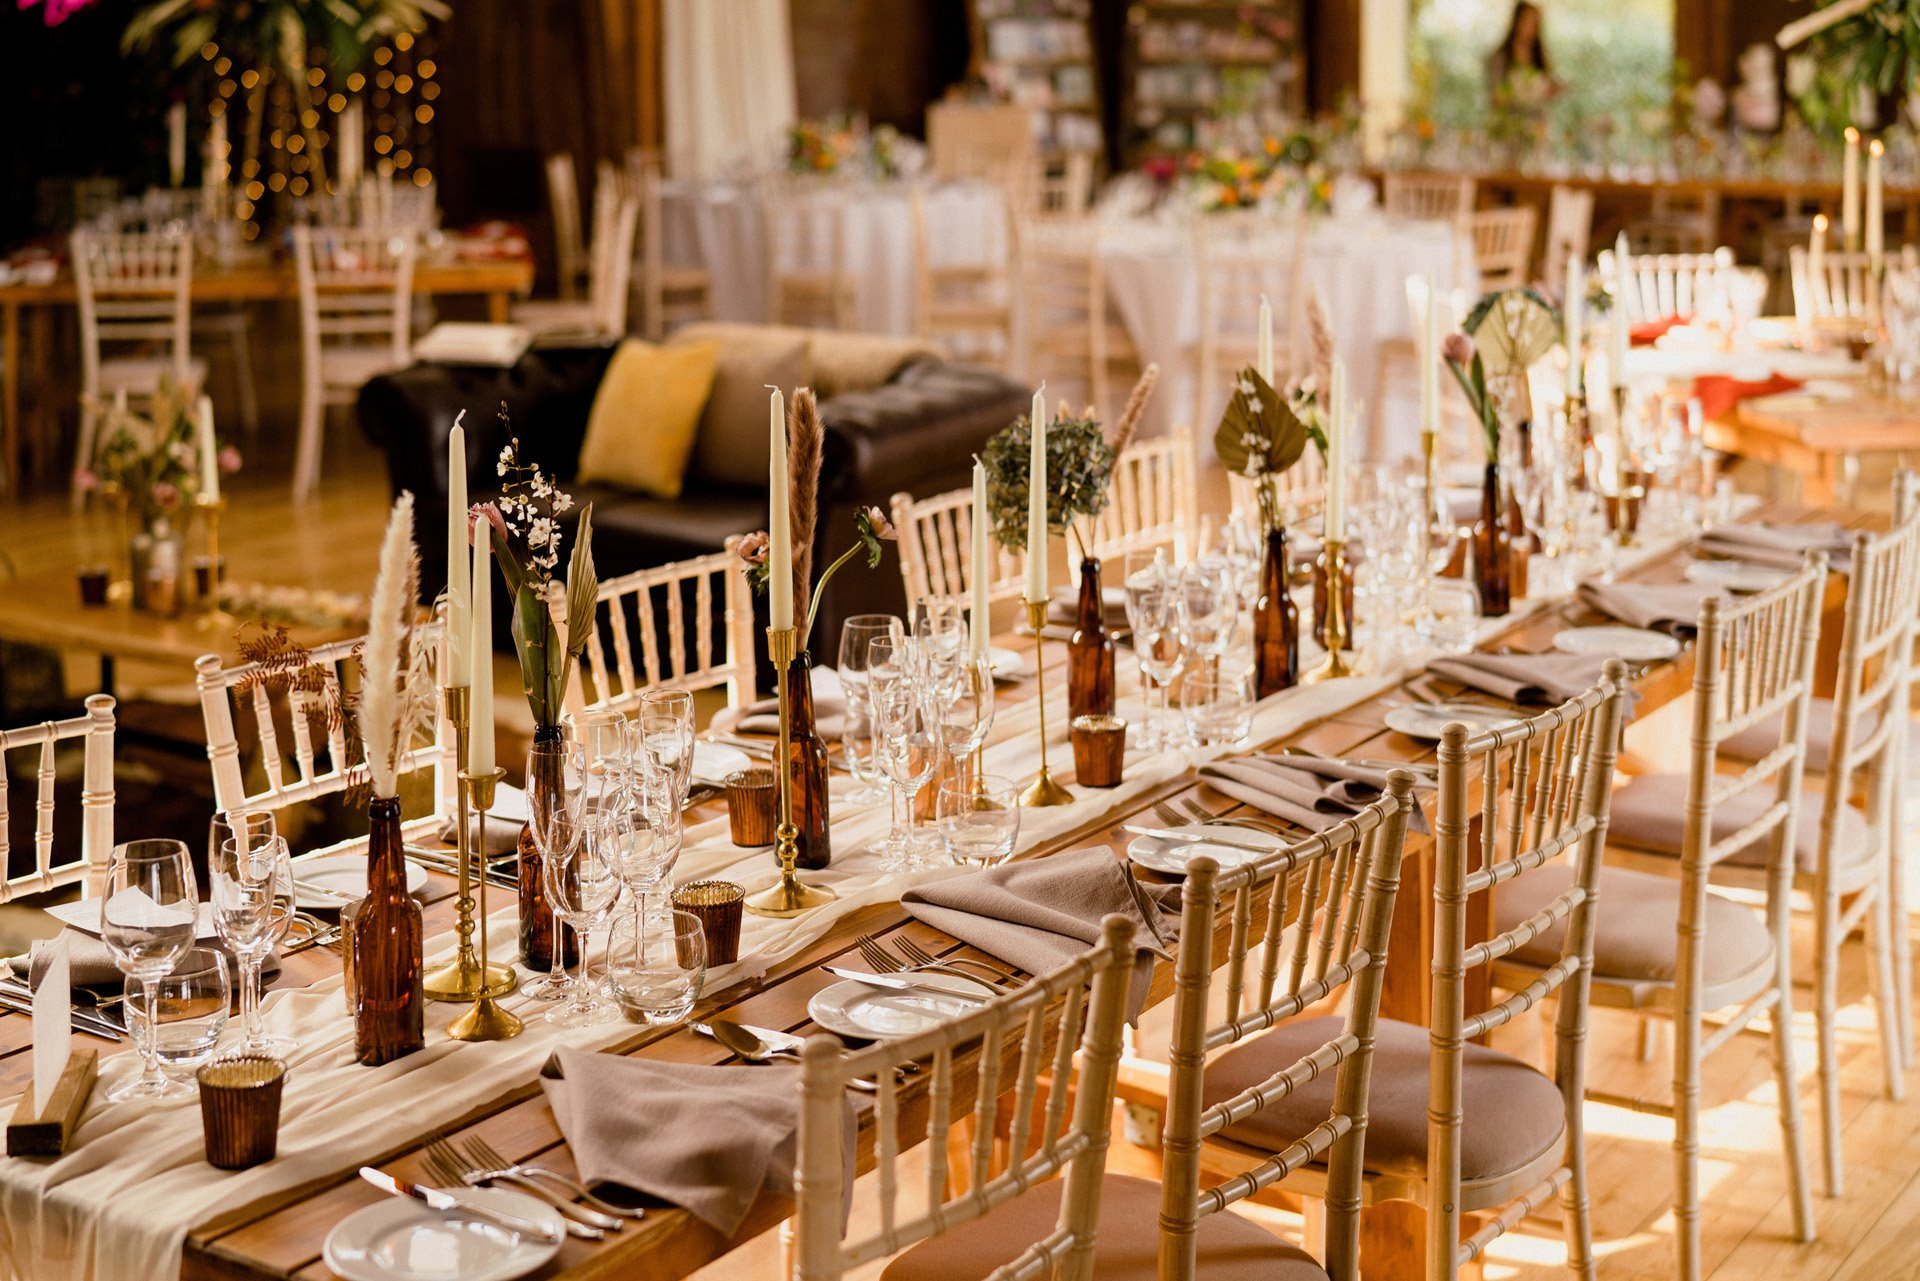 Banquet tables for spring wedding